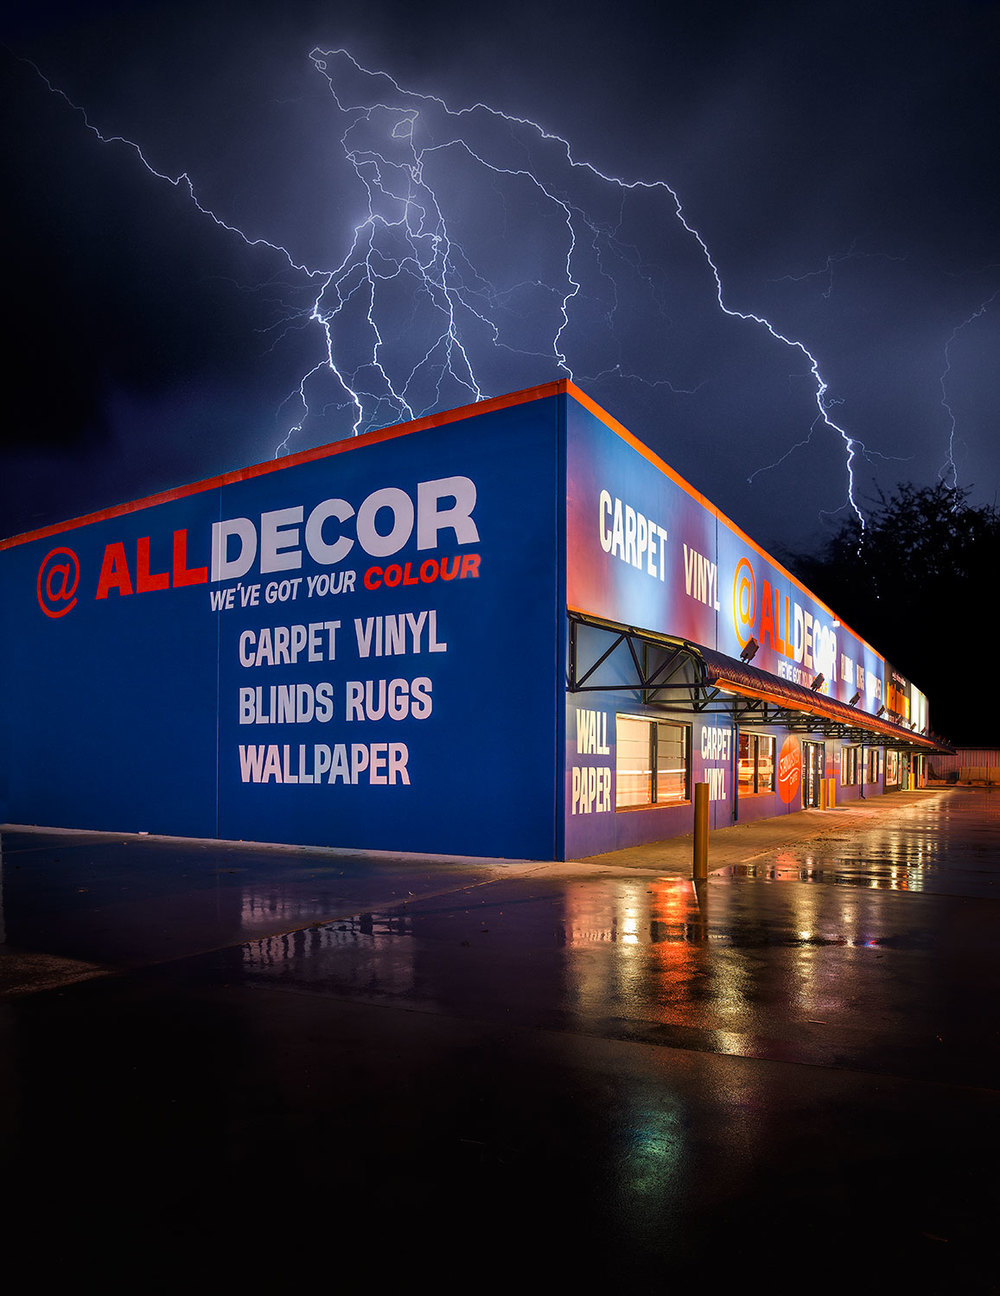 All Decor Carpet store in Western Australia photo taken during recent lightning storms